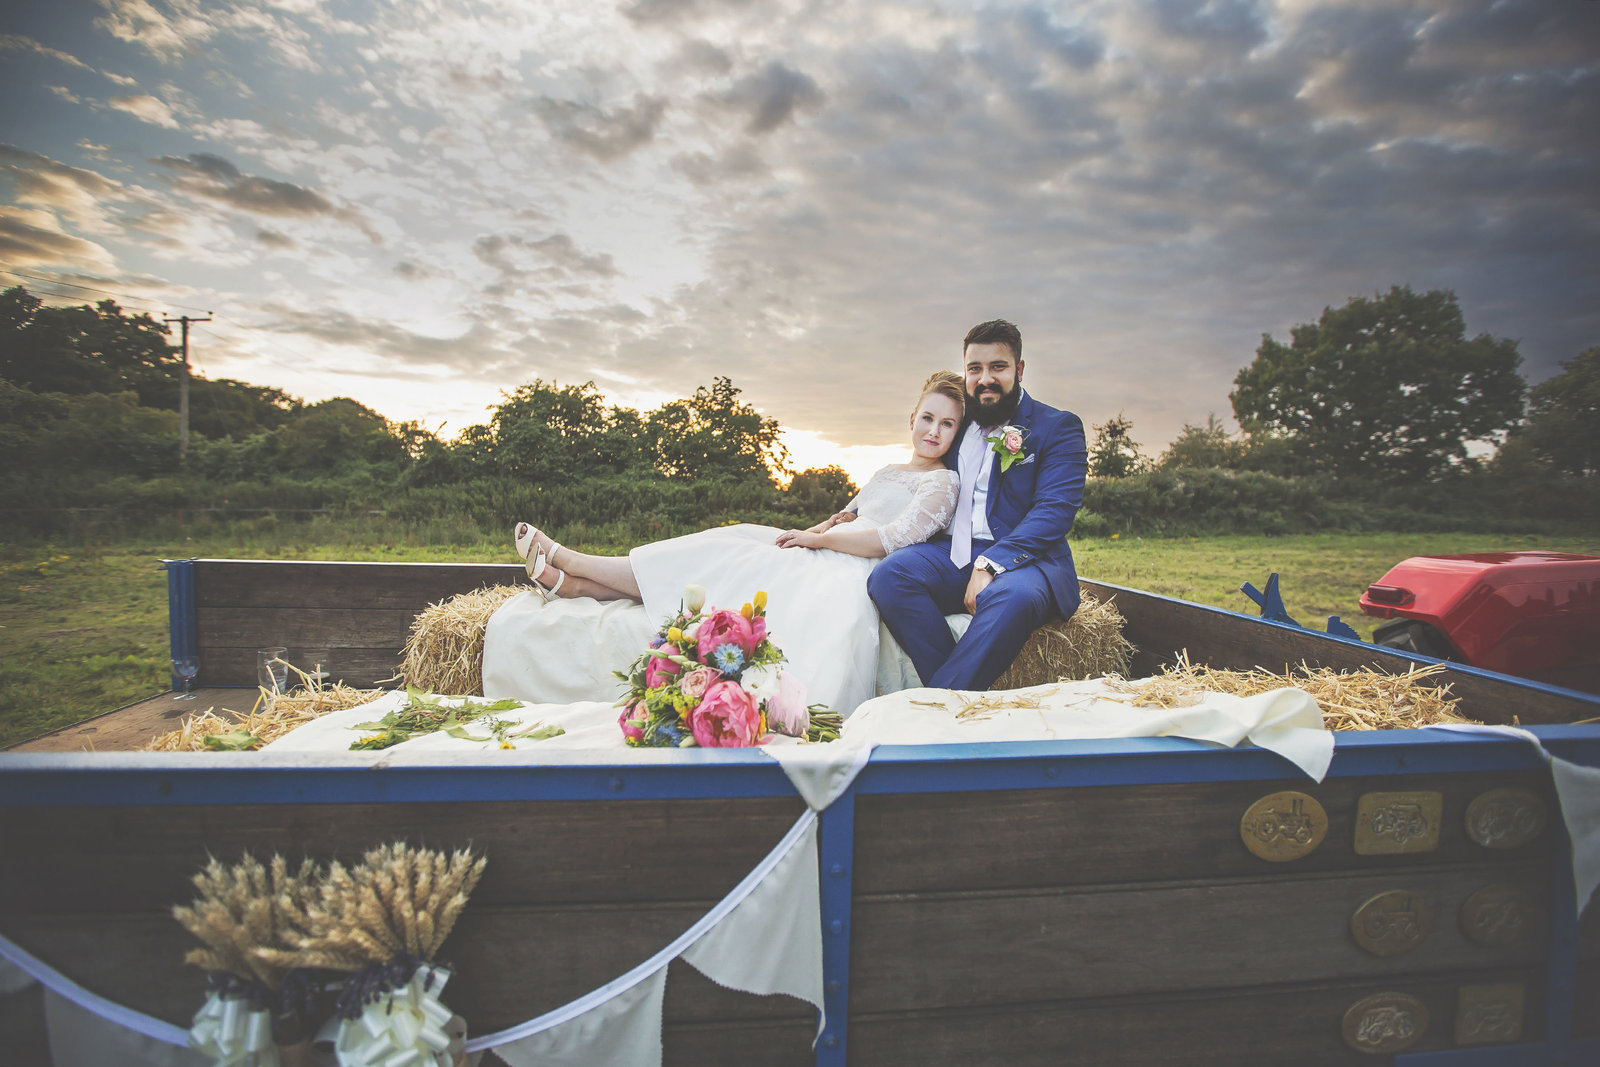 Wedding photography by Jessica elisze couple on hay bales